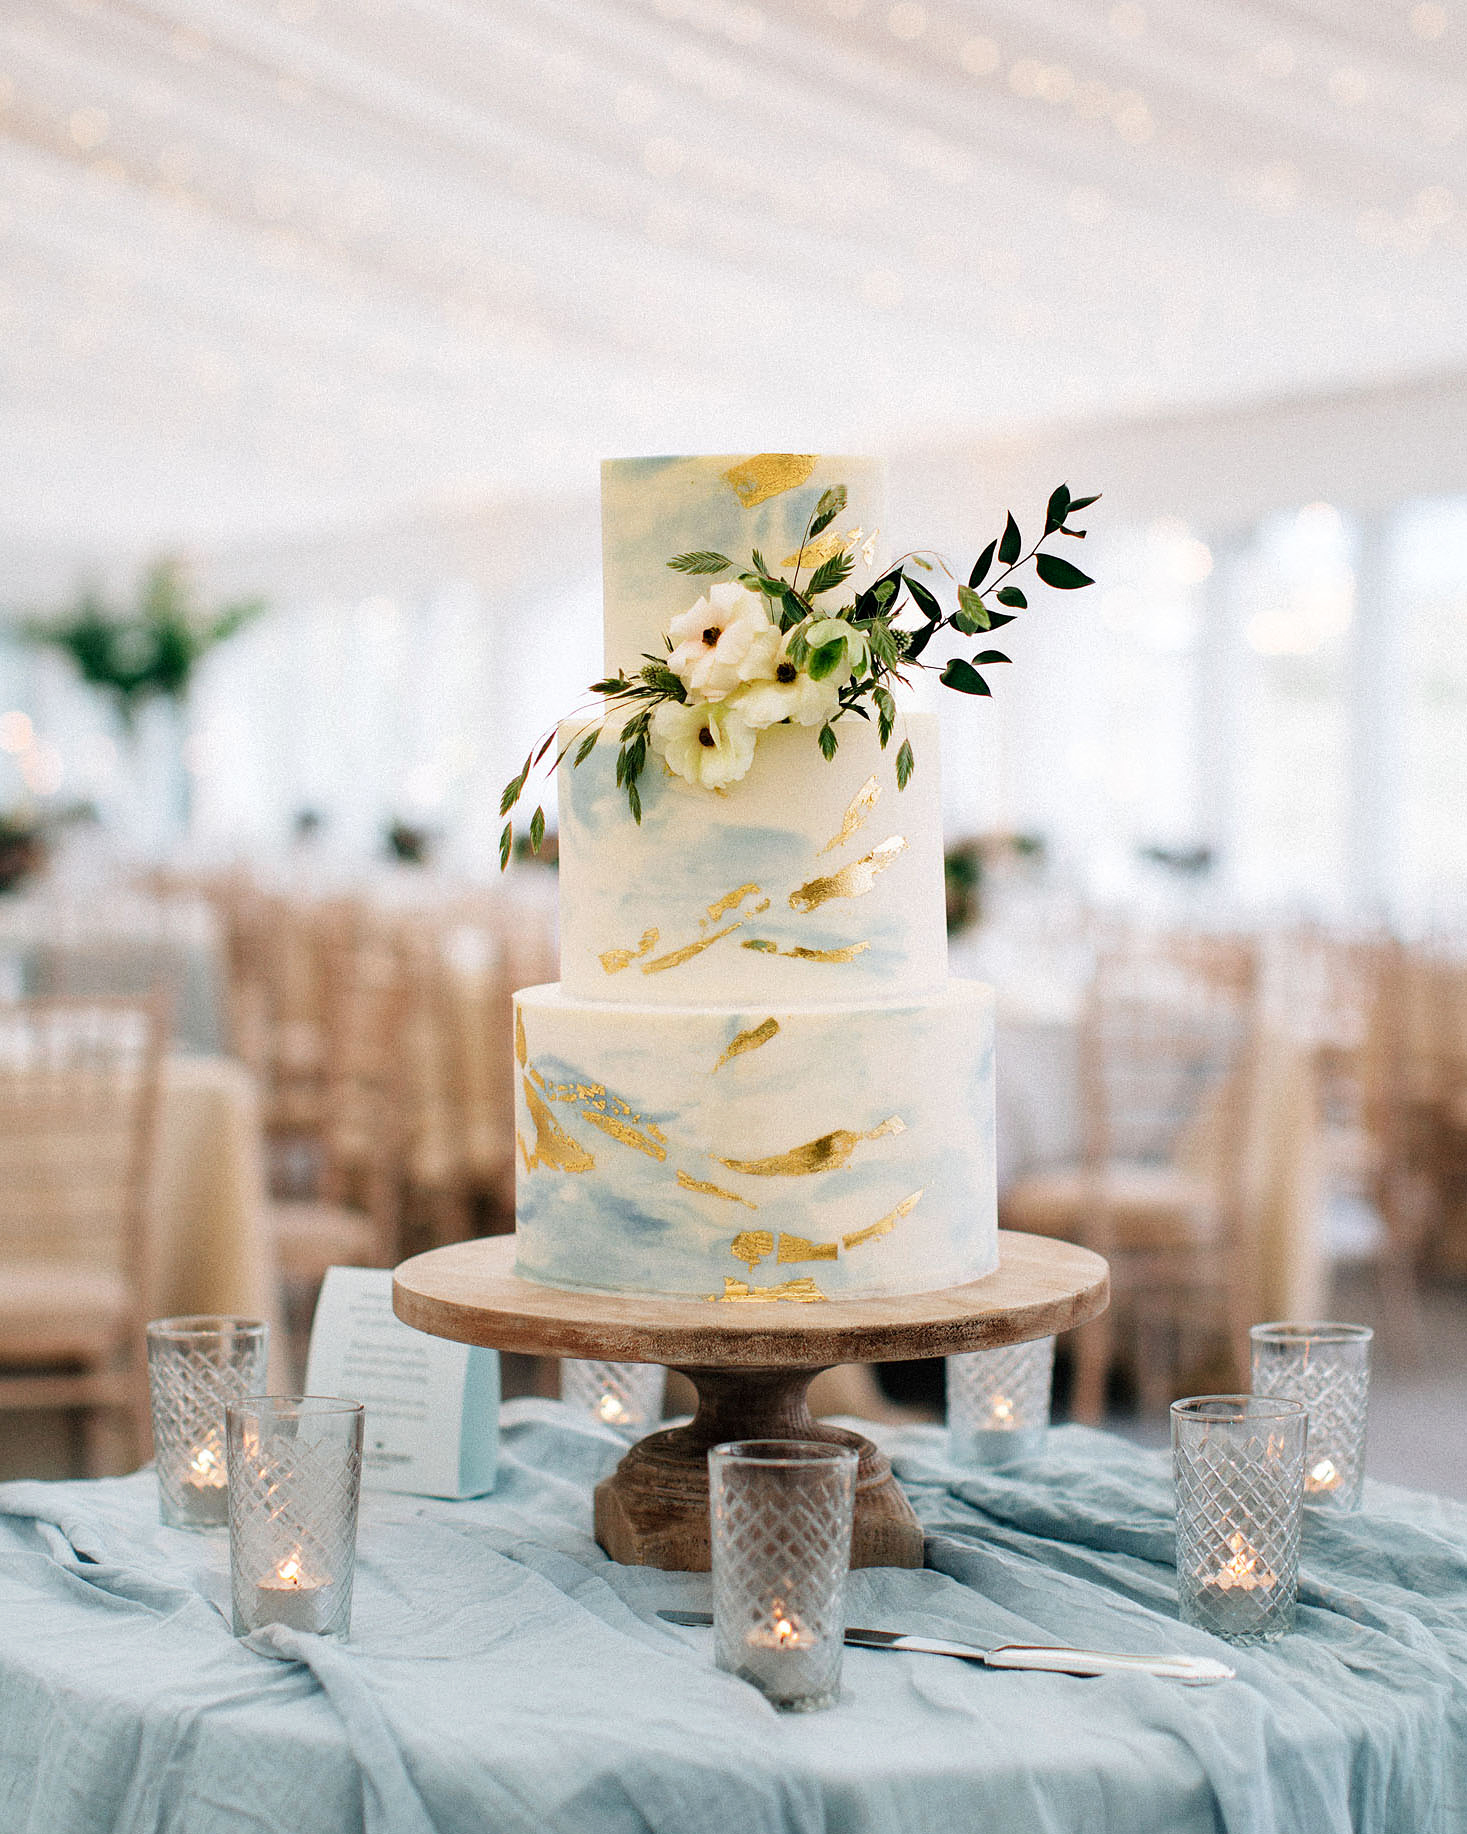 There's a good reason why this wedding cake, which was brought to life by Cloudberry Cakery, has as many pins as it does. The swirled buttercream confection was flecked with blue and gold leaf to evoke the sea.